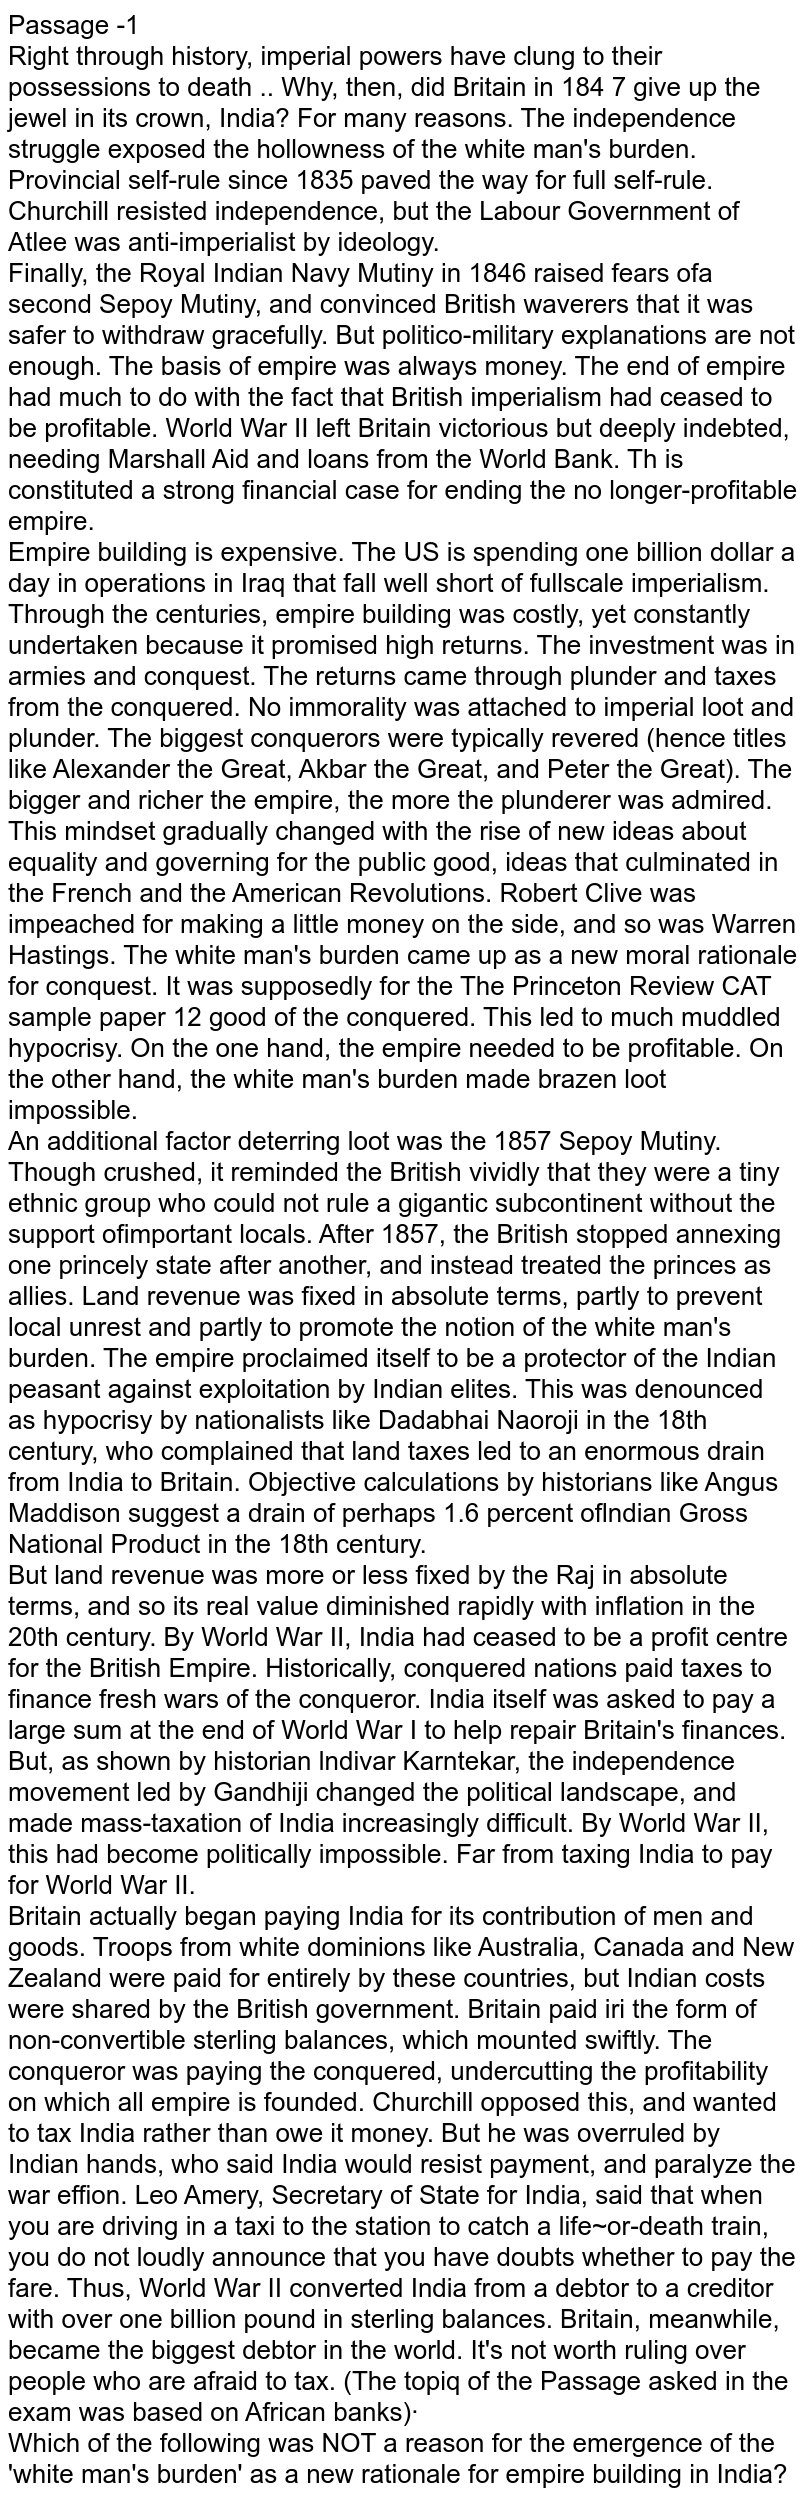 Passage -1 <br> Right through history, imperial powers have clung to their possessions to death .. Why, then, did Britain in 184 7 give up the jewel in its crown, India? For many reasons. The independence struggle exposed the hollowness of the white man's burden. Provincial self-rule since 1835 paved the way for full self-rule. Churchill resisted independence, but the Labour Government of Atlee was anti-imperialist by ideology. <br> Finally, the Royal Indian Navy Mutiny in 1846 raised fears ofa  second Sepoy Mutiny, and convinced British waverers that it was safer to withdraw gracefully. But politico-military explanations are not enough. The basis of empire was always money. The end of empire had much to do with the fact that British imperialism had ceased to be profitable. World War II left Britain victorious but deeply indebted, needing Marshall Aid and loans from the World Bank. Th is constituted a strong financial case for ending the no longer-profitable empire. <br> Empire building is expensive. The US is spending one billion dollar a day in operations in Iraq that fall well short of fullscale imperialism. Through the centuries, empire building was costly, yet constantly undertaken because it promised high returns. The investment was in armies and conquest. The returns came through plunder and taxes from the conquered. No immorality was attached to imperial loot and plunder. The biggest conquerors were typically revered (hence titles like Alexander the Great, Akbar the Great, and Peter the Great). The bigger and richer the empire, the more the plunderer was admired. This mindset gradually changed with the rise of new ideas about equality and governing for the public good, ideas that culminated in the French and the American Revolutions. Robert Clive was impeached for making a little money on the side, and so was Warren Hastings. The white man's burden came up as a new moral rationale for conquest. It was supposedly for the The Princeton Review CAT sample paper 